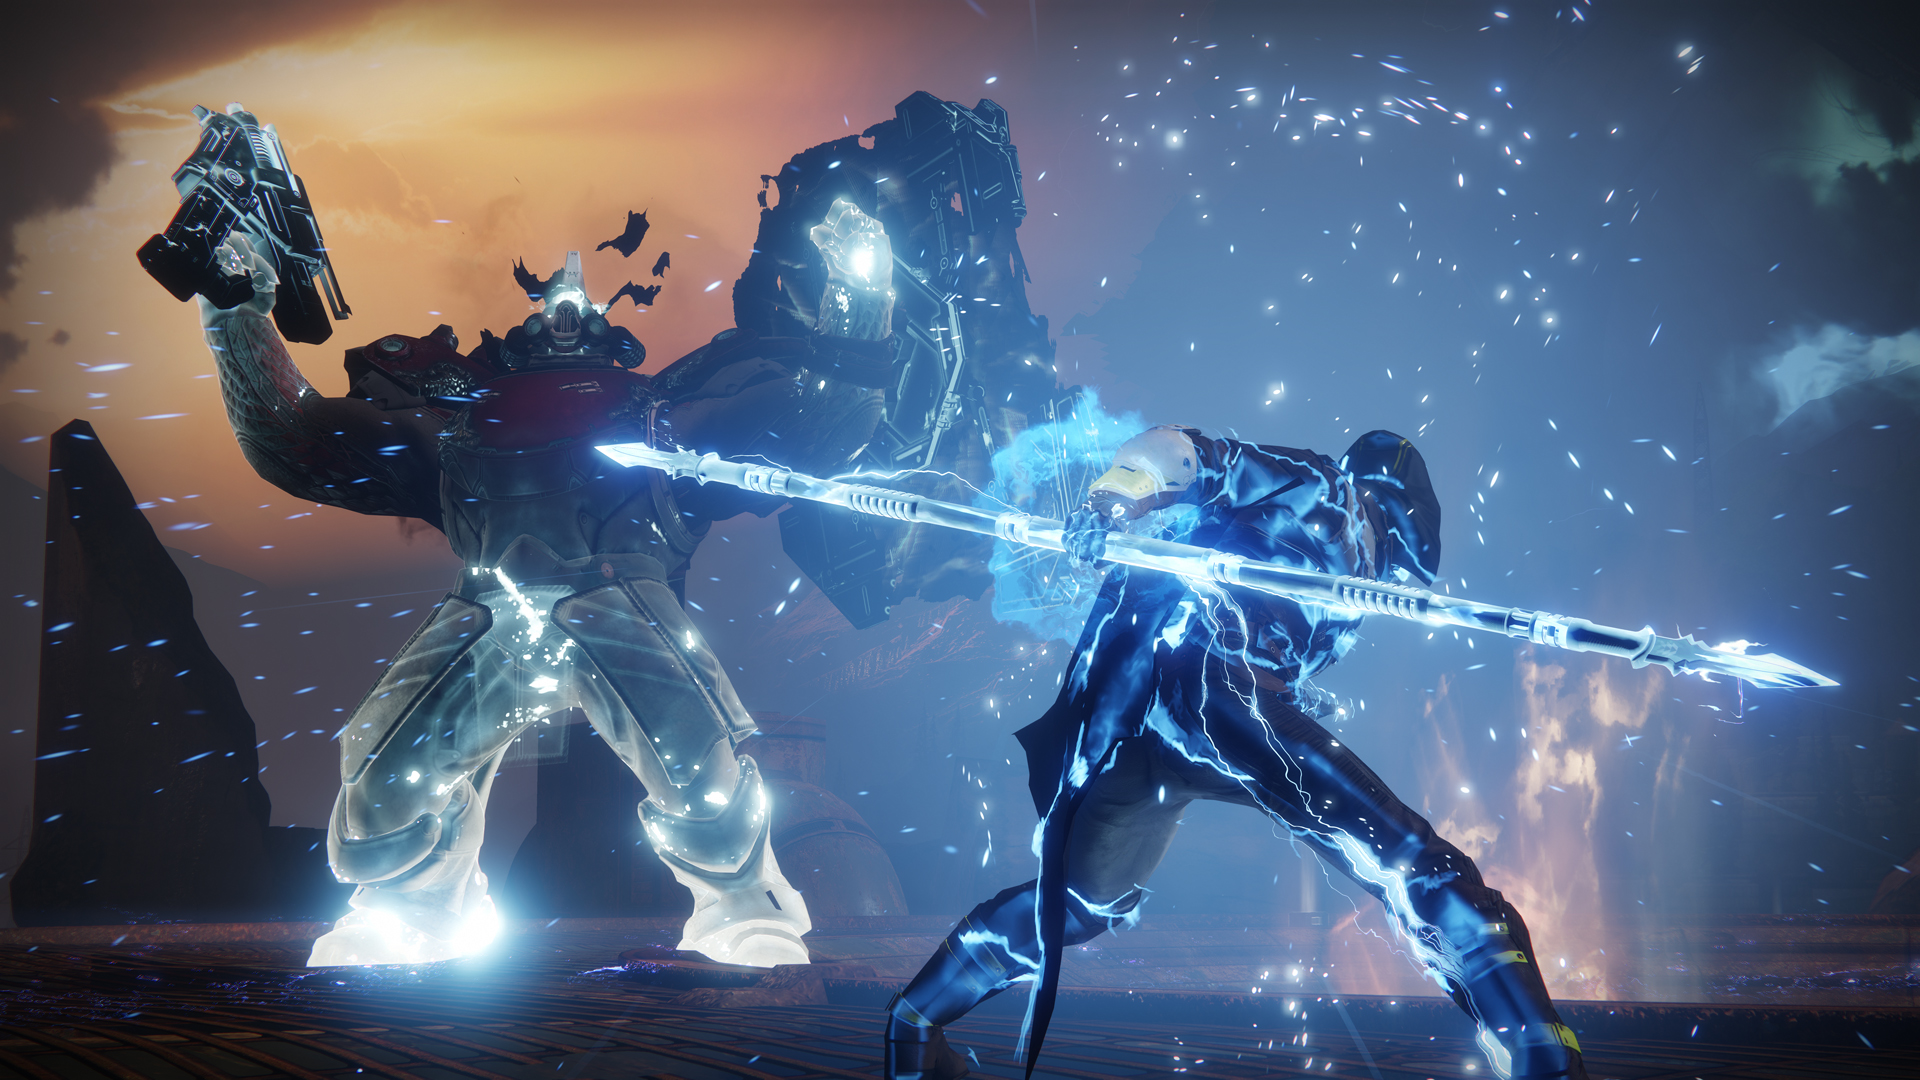 Bungie has detailed Faction Rallies, starting in Destiny 2 next week